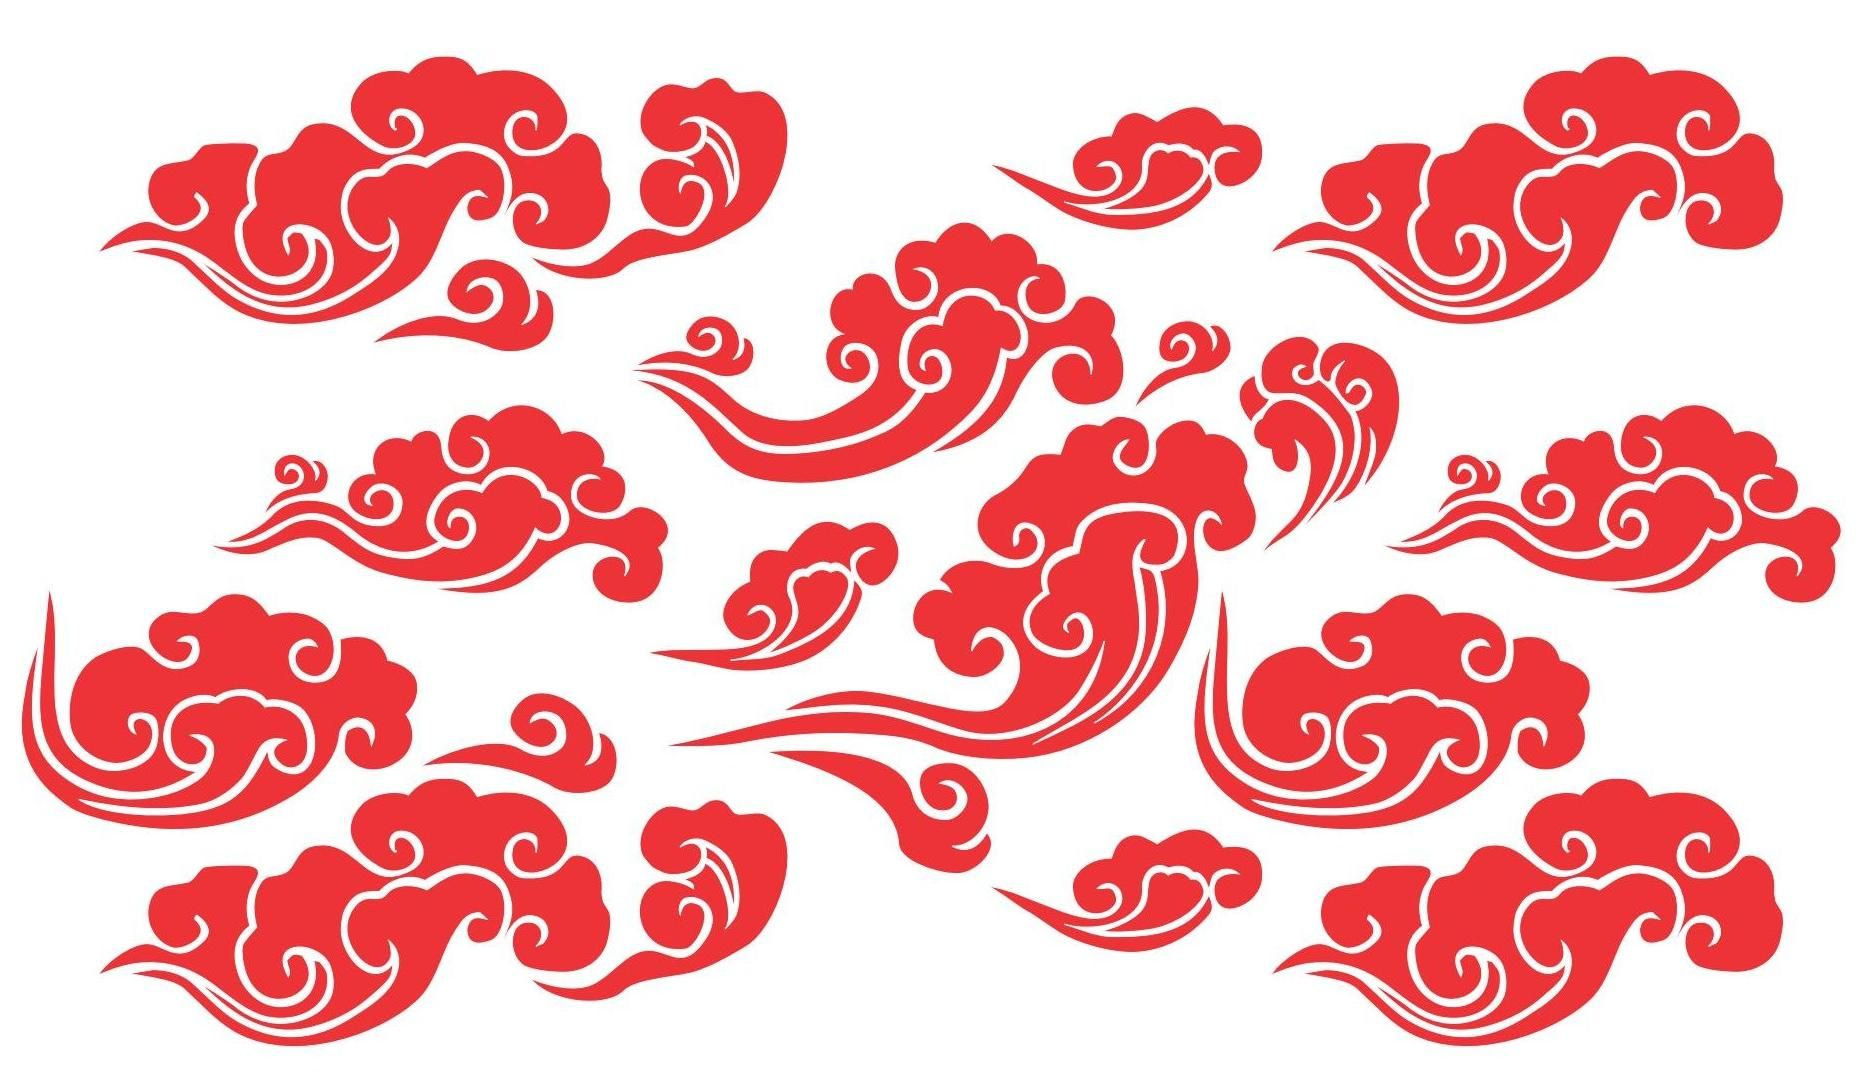 HD Chinese Vector Art Images » Free Vector Art, Images, Graphics.